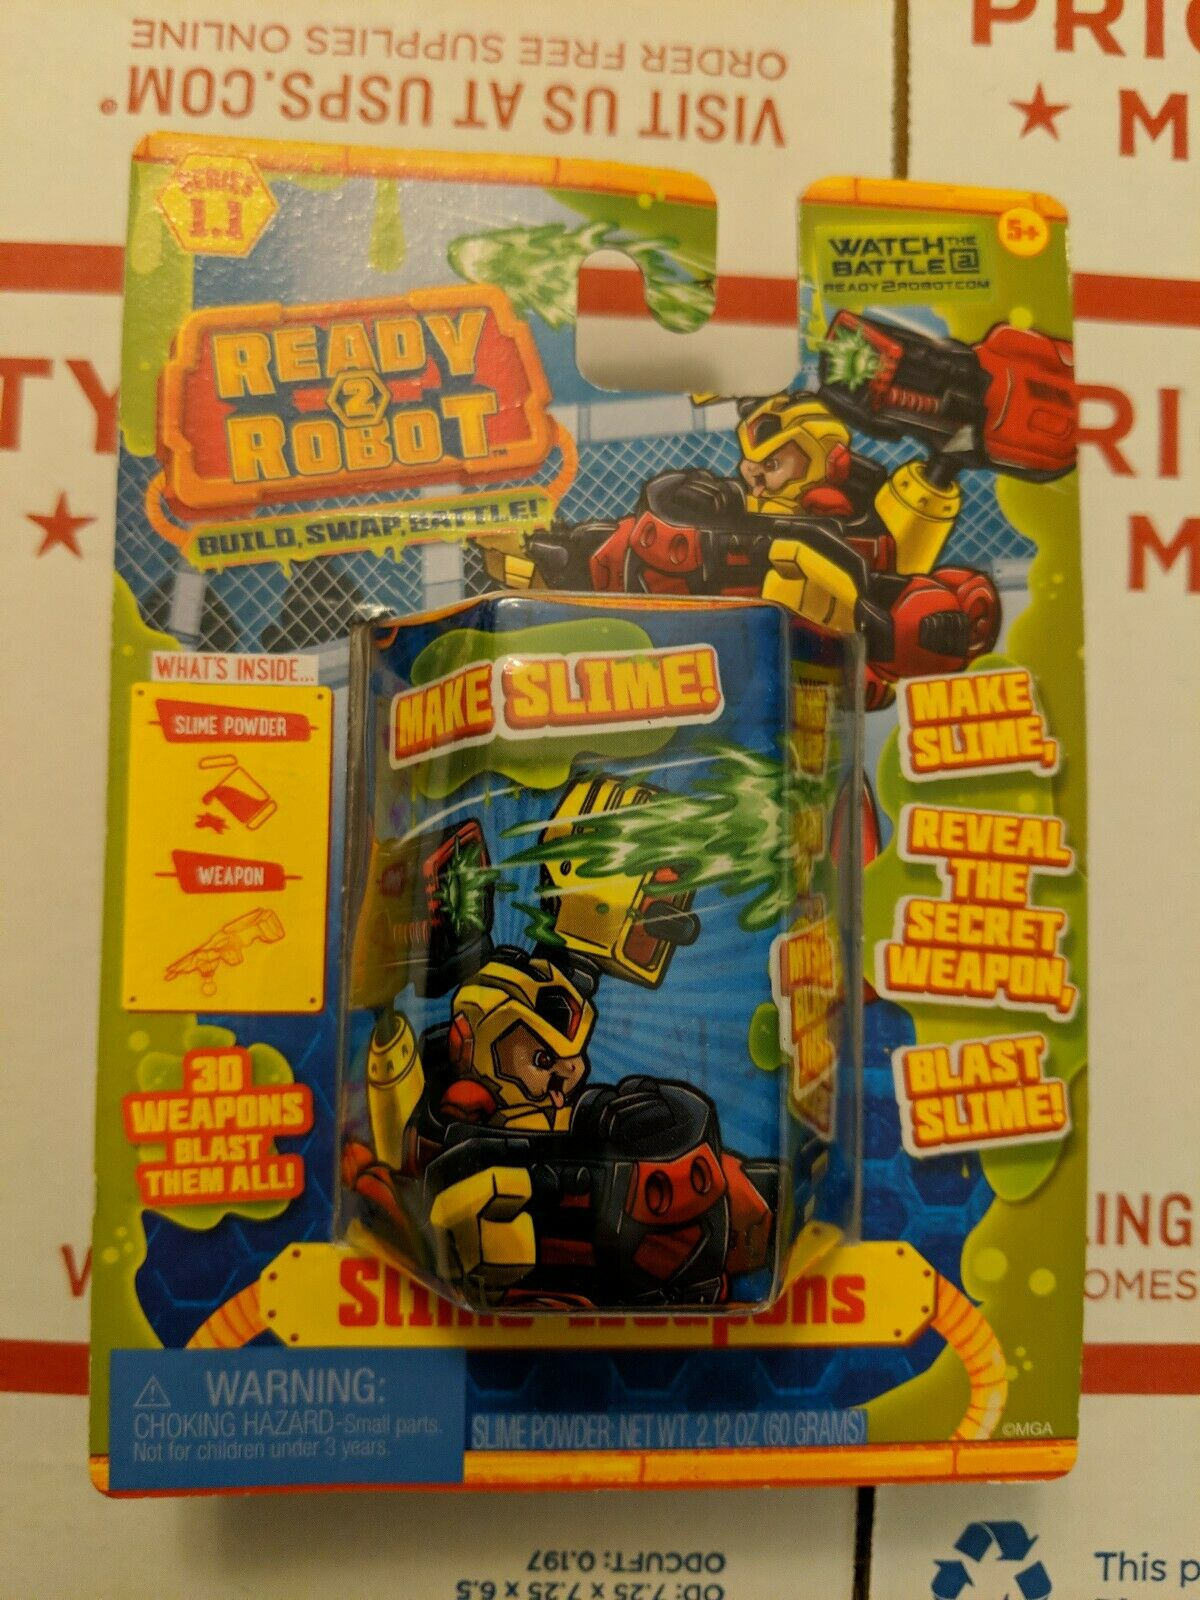 Spielzeug Ready 2 Robot Slime Weapons Series 1 1 Mystery Blaster Pack New Sealed Triadecont Com Br